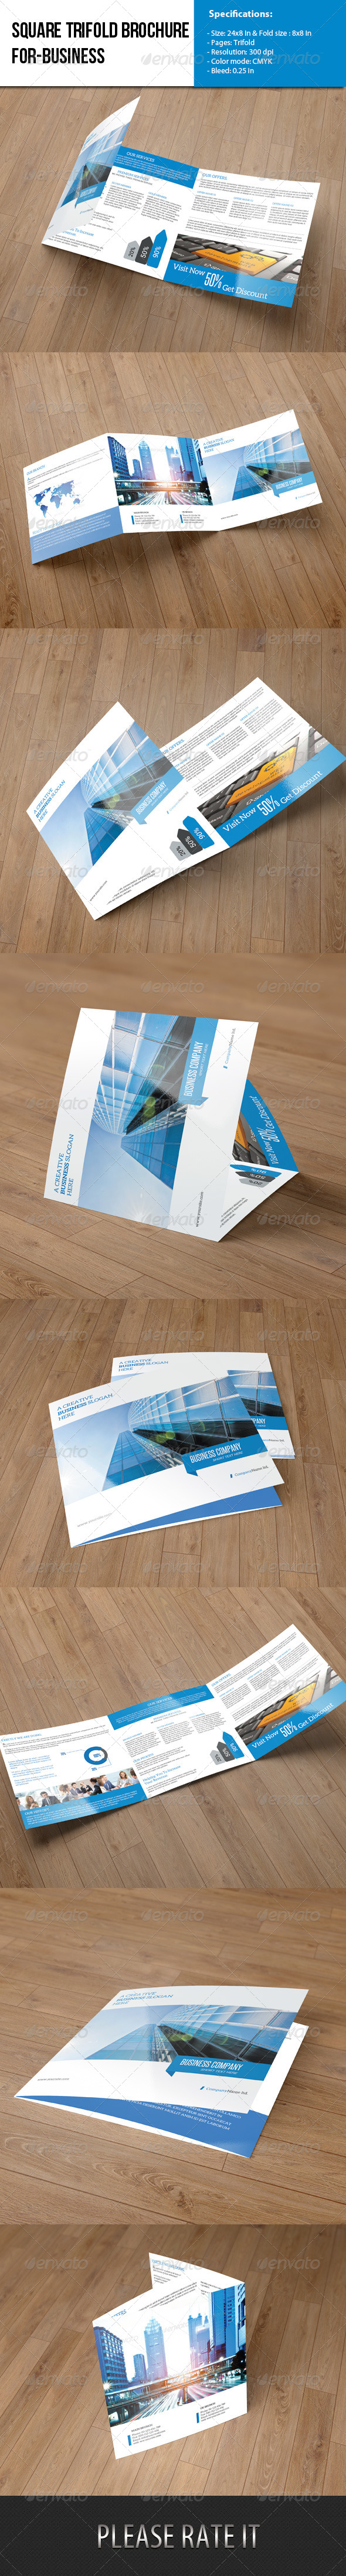 Square Trifold- Business - Corporate Brochures